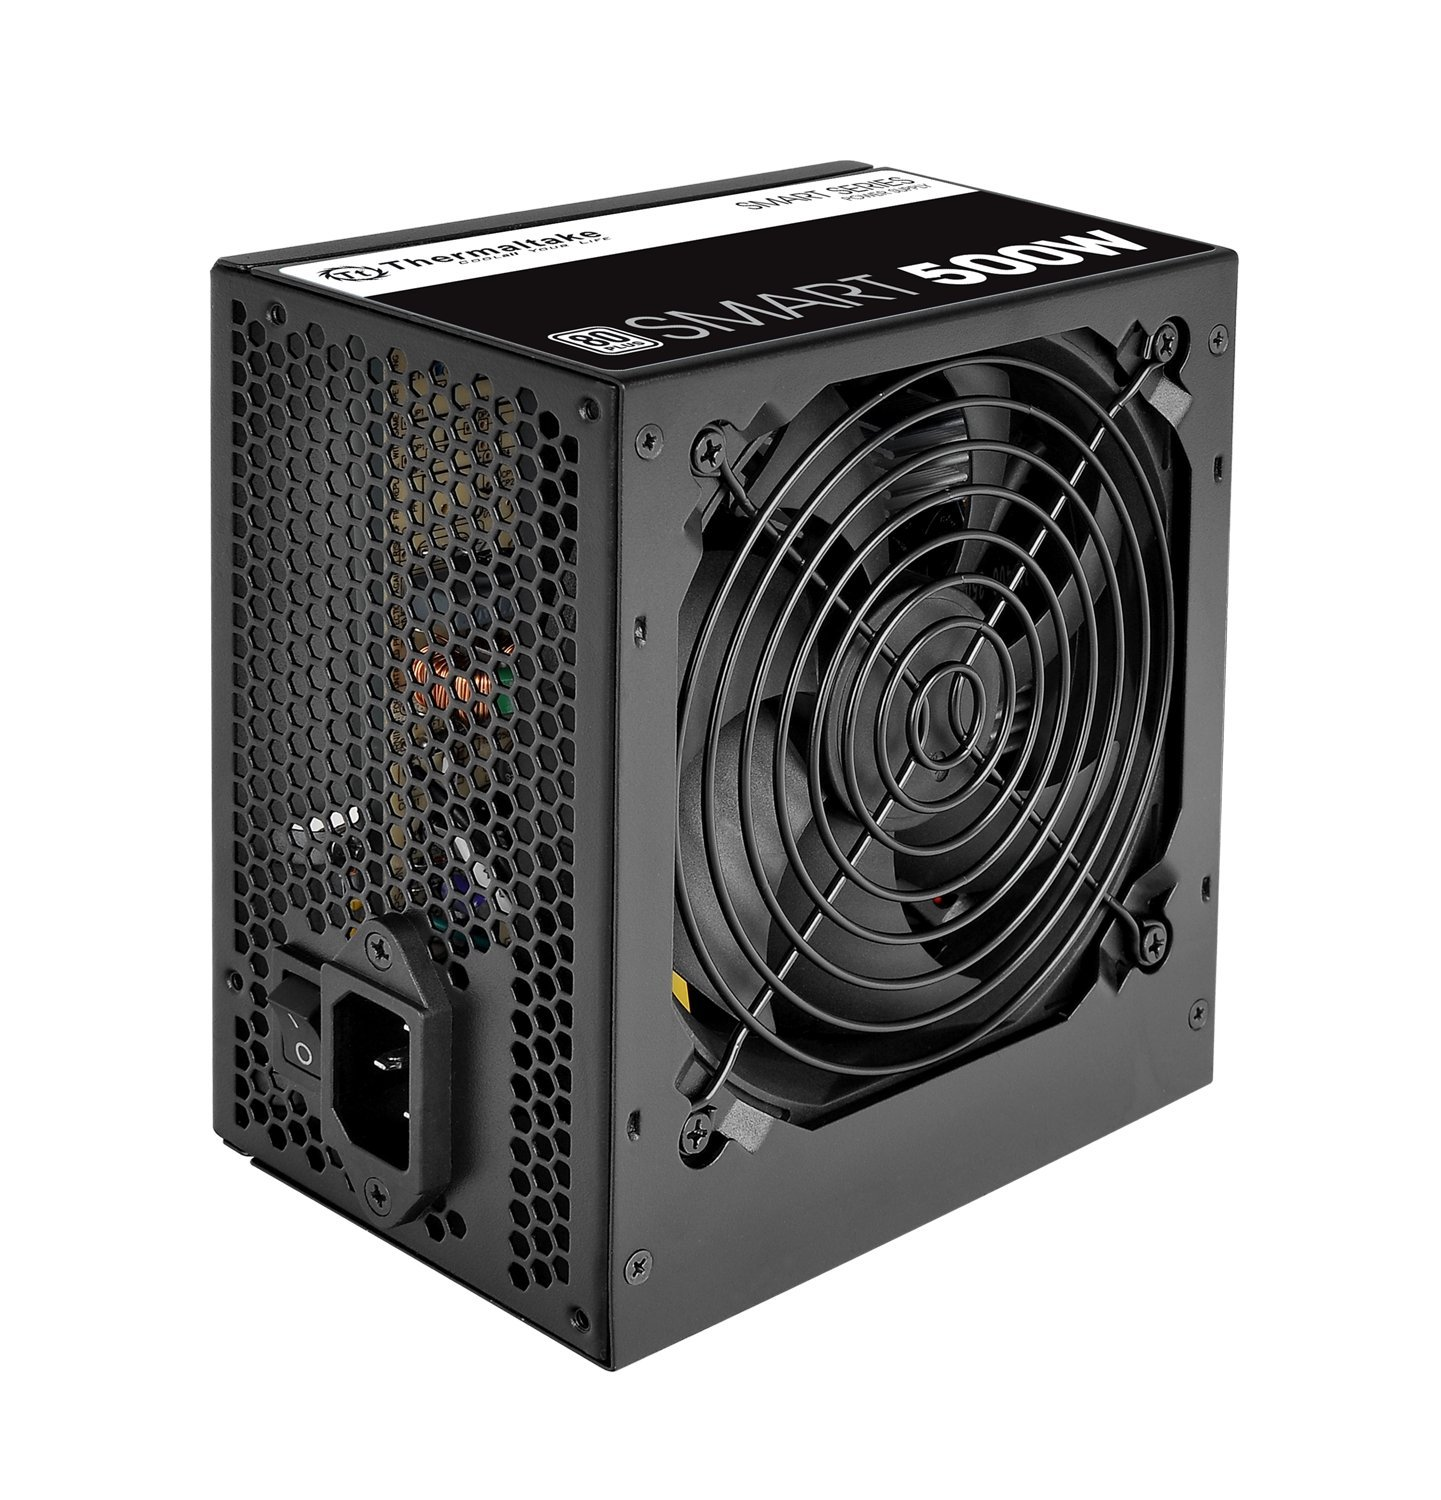 Thermaltake Smart 500W 80+ White Certified PSU, Continuous Power with 120mm cooling fan, ATX 12V V2.3/EPS 12V Active PFC Power Supply PS-SPD-0500NPCWUS-W by Thermaltake (Image #2)